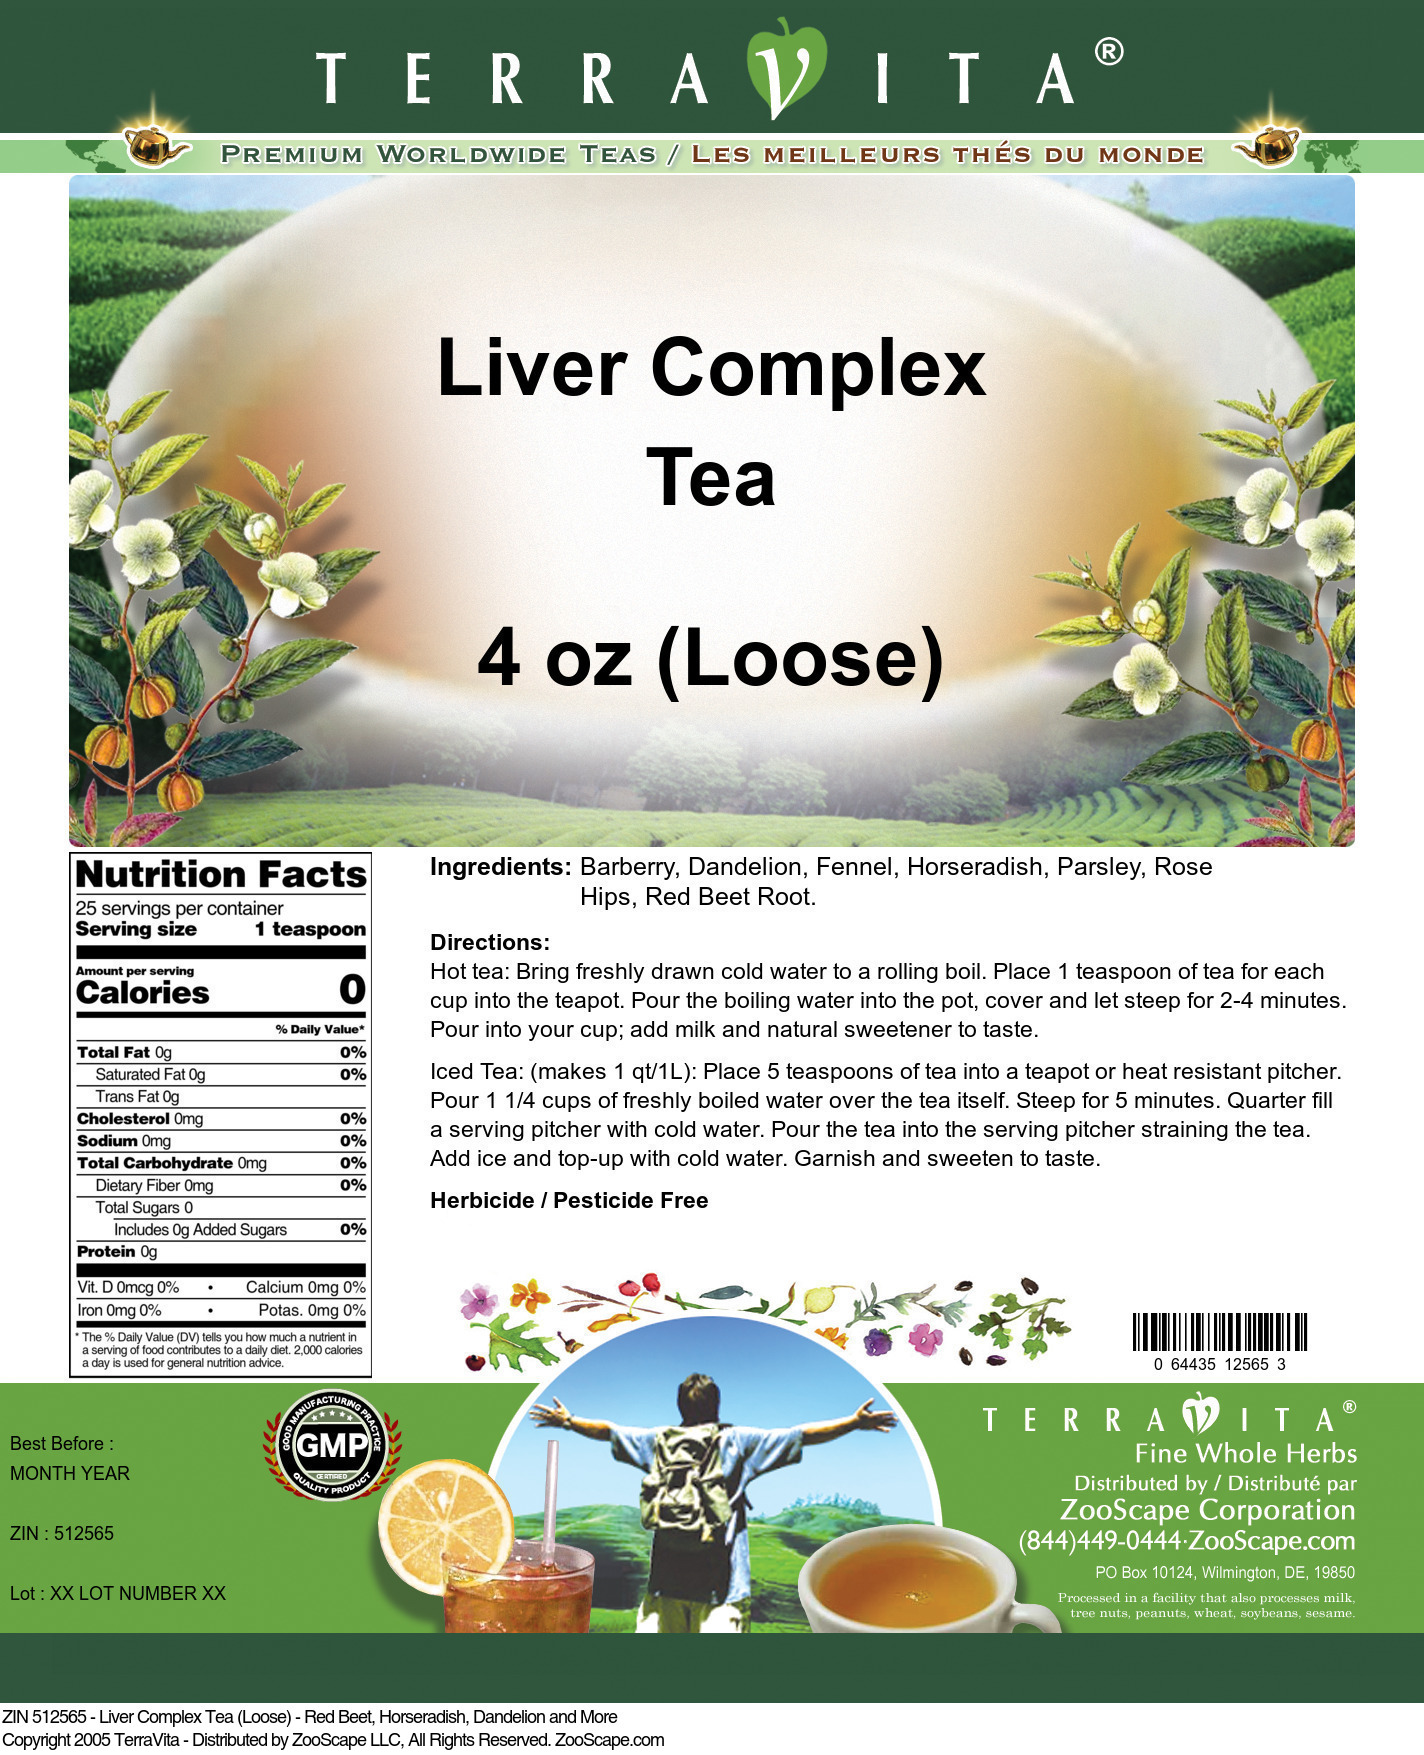 Liver Complex Tea (Loose) - Red Beet, Horseradish, Dandelion and More